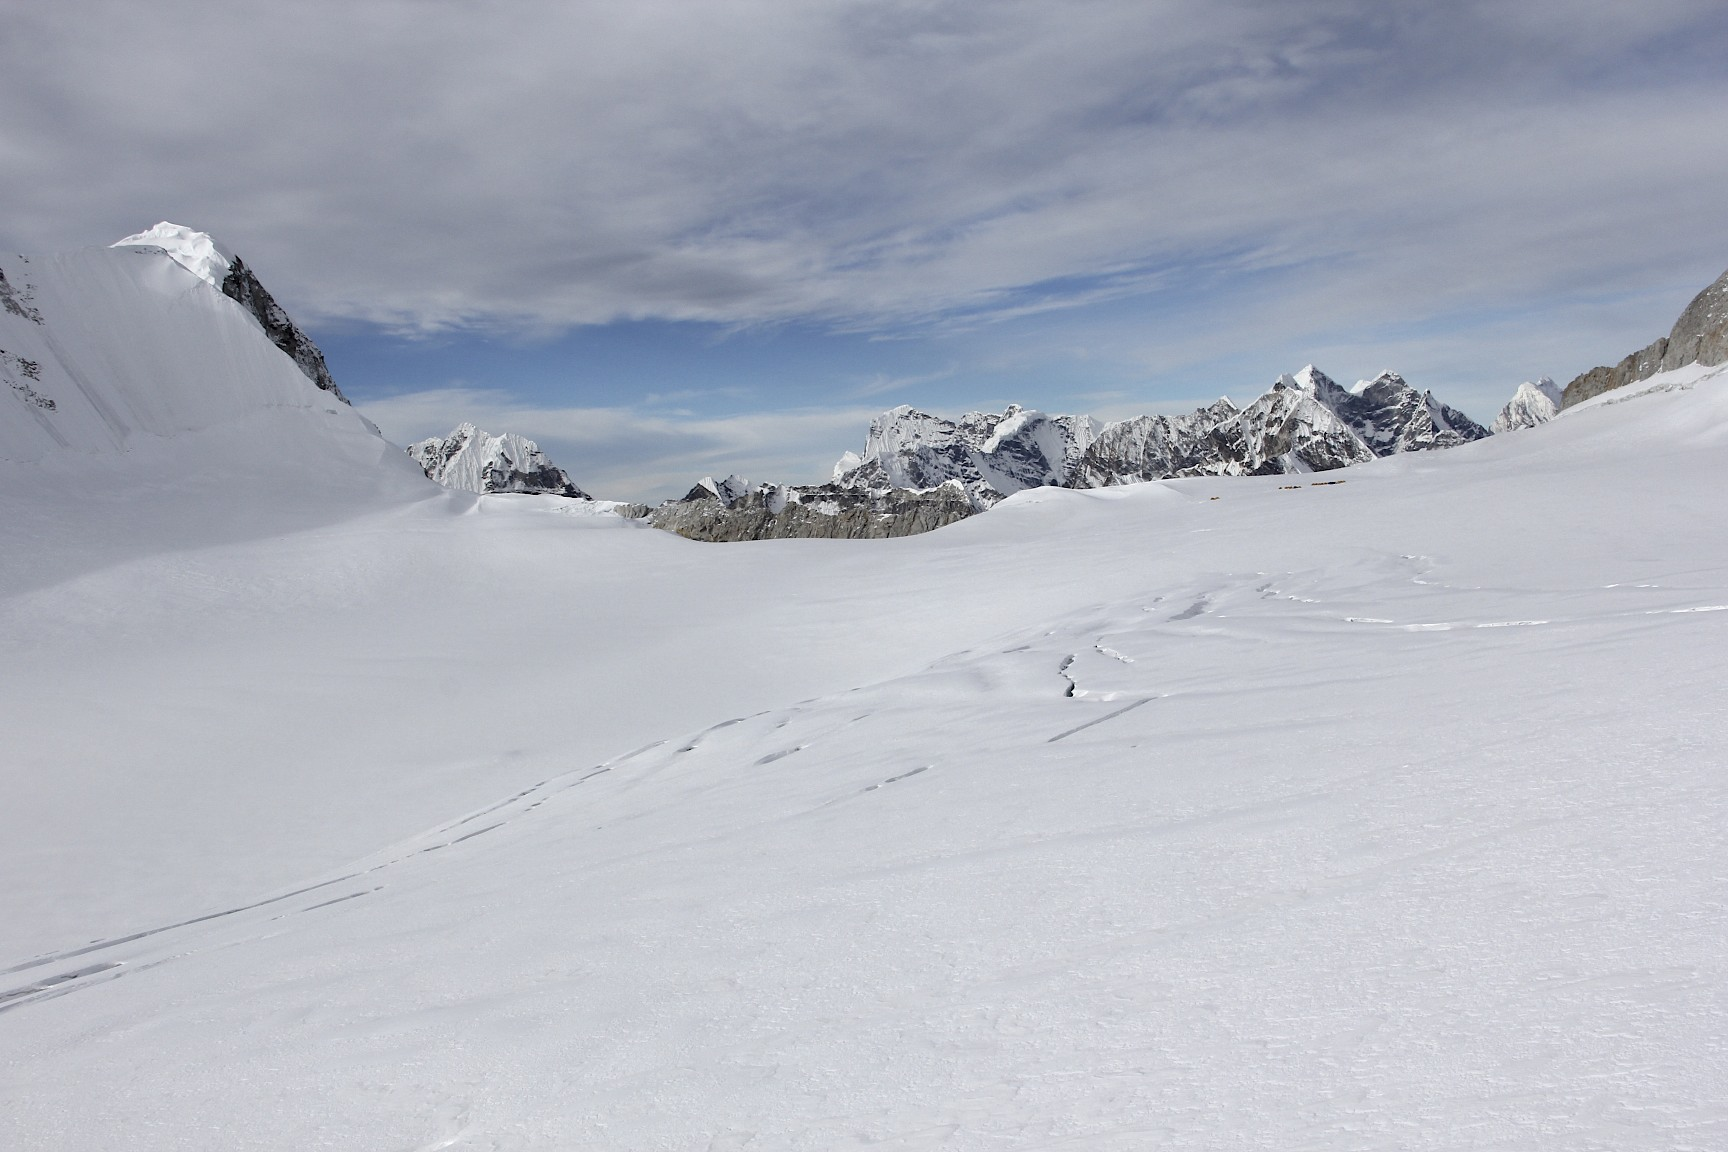 The snow/ice plateau between Sherpani Col and West Col at 6,000m that we need to cross.